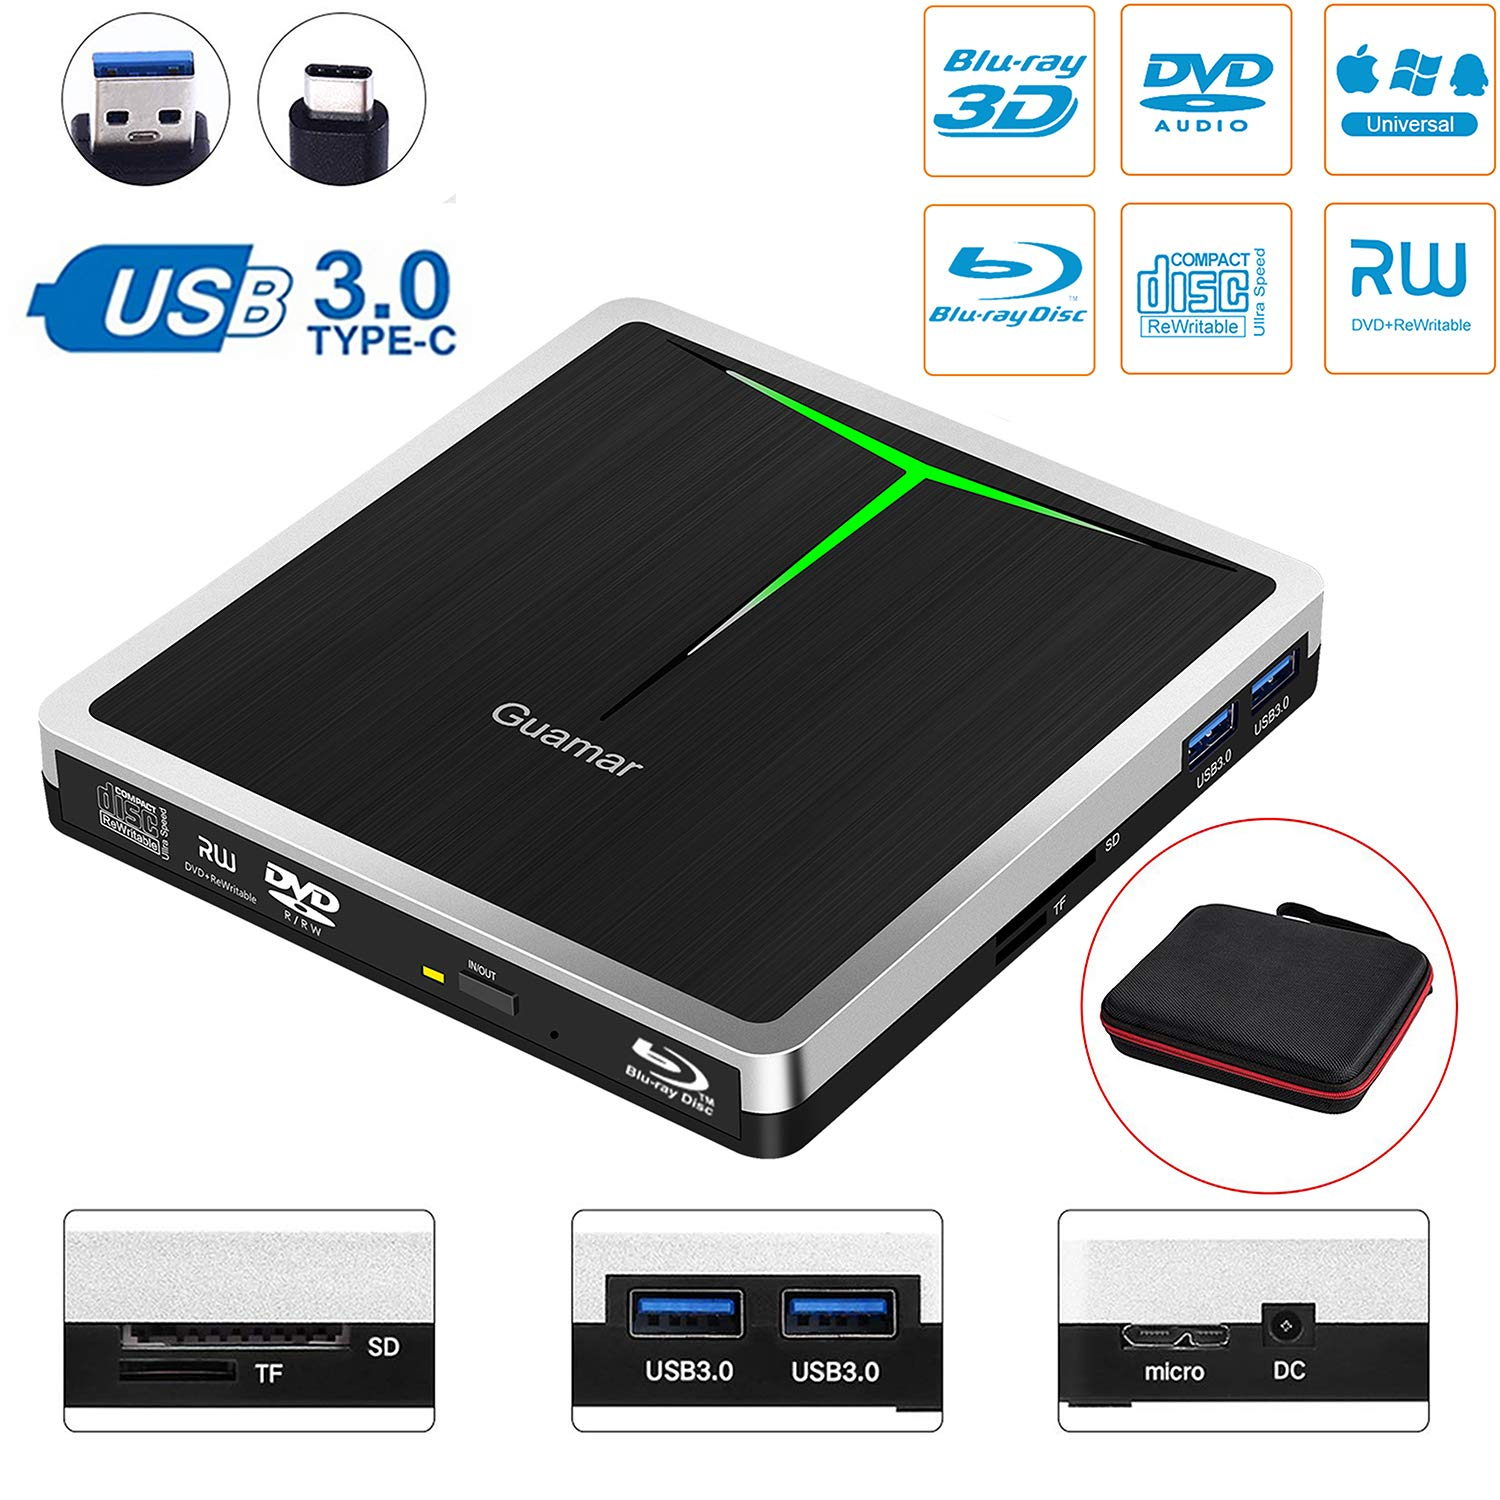 5 in 1 External Blu Ray Drive,USB 3.0/USB C Blue-Ray CD/DVD Burner/Writer for Laptop/Micbook/Windows 10/PC, SD Card/TF Card/2 USB 3.0 Transfers and Charging Supported by Guamar